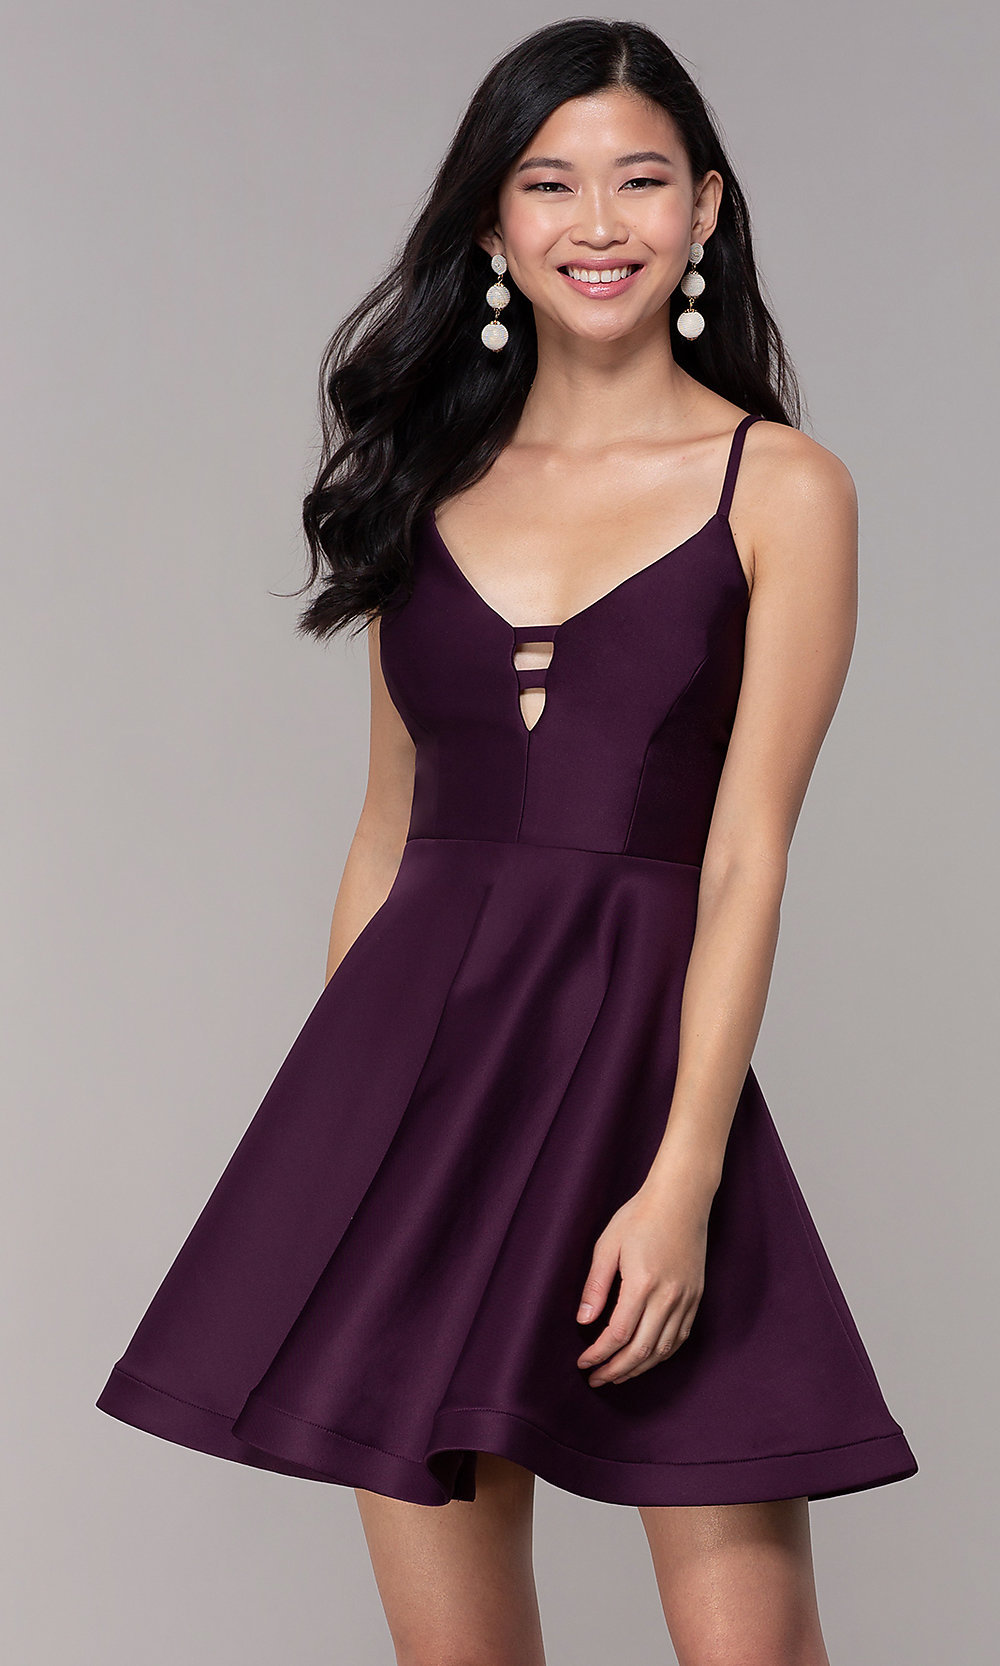 Plum Purple Short Party Dress With Cut Outs